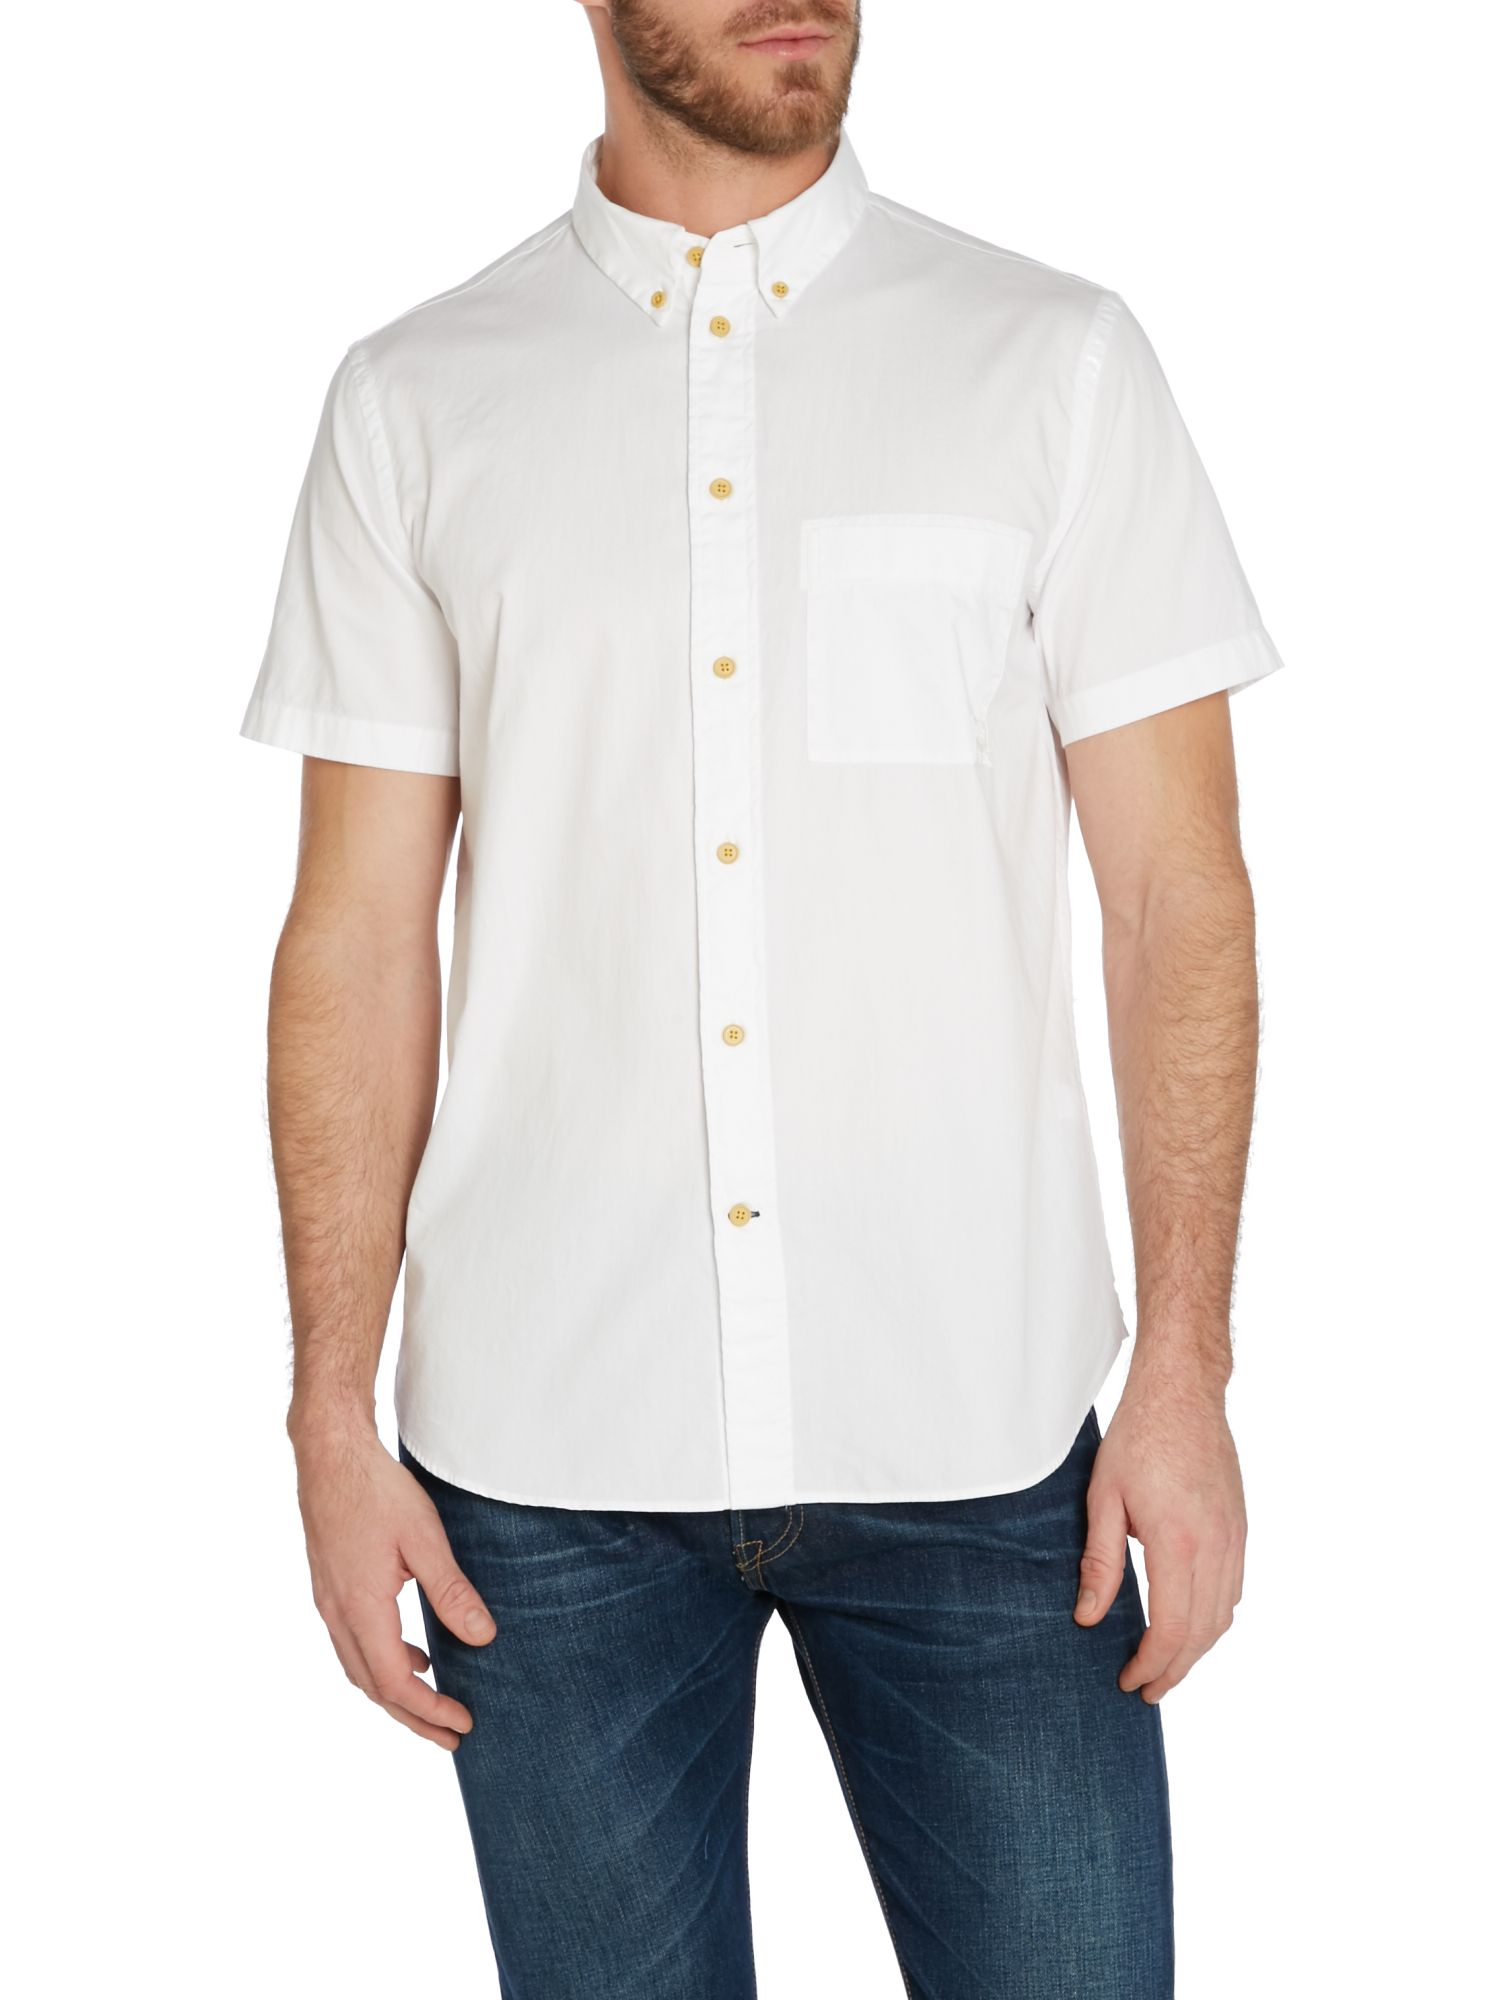 Paul Smith Plain Classic Fit Short Sleeve Button Down